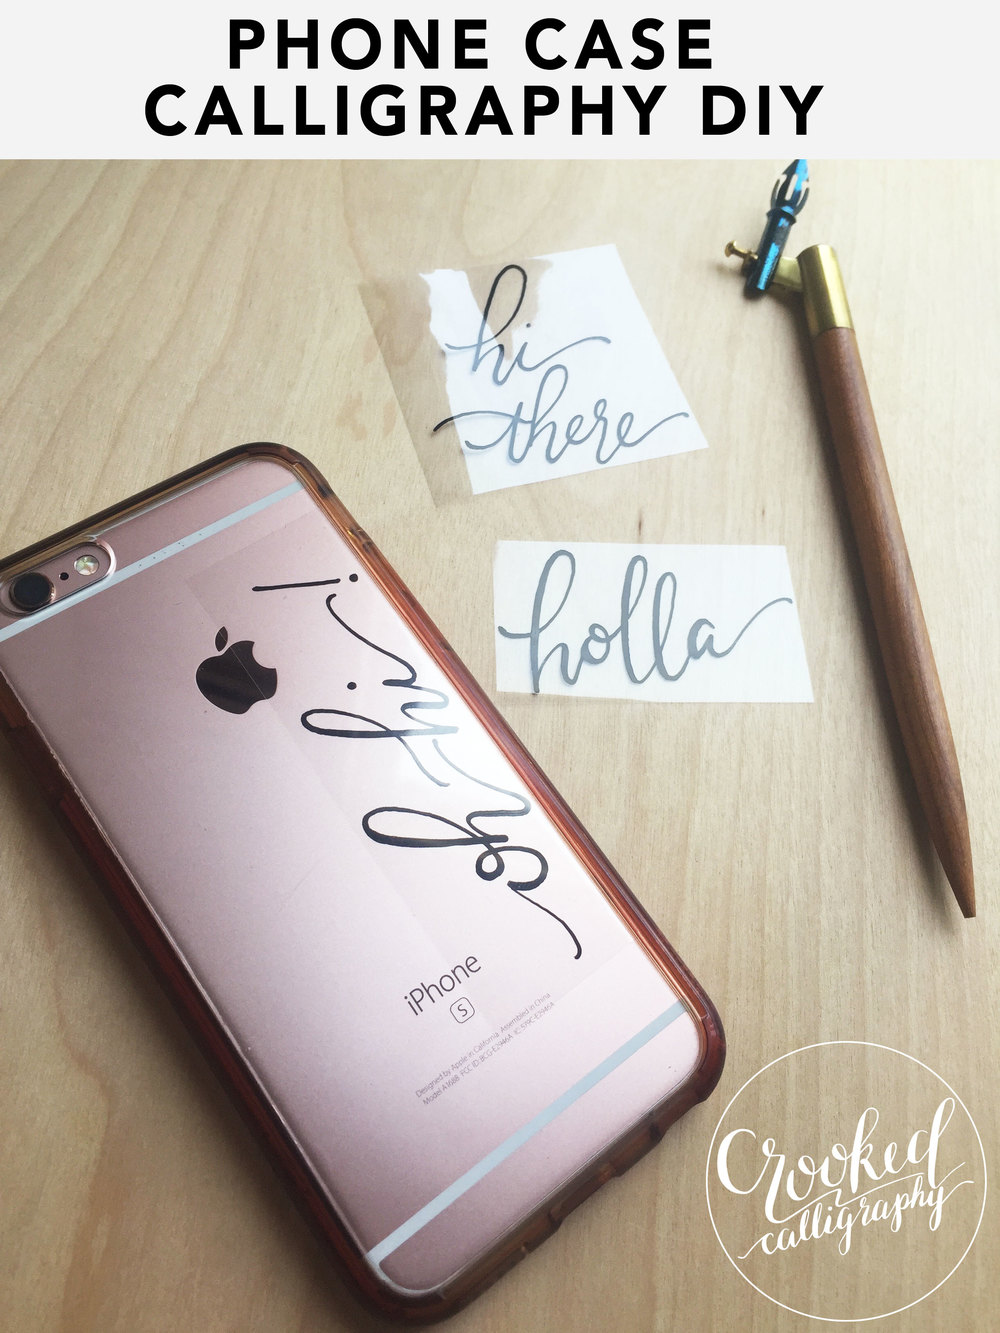 Diy calligraphy phone case crooked calligraphy for Homemade phone case